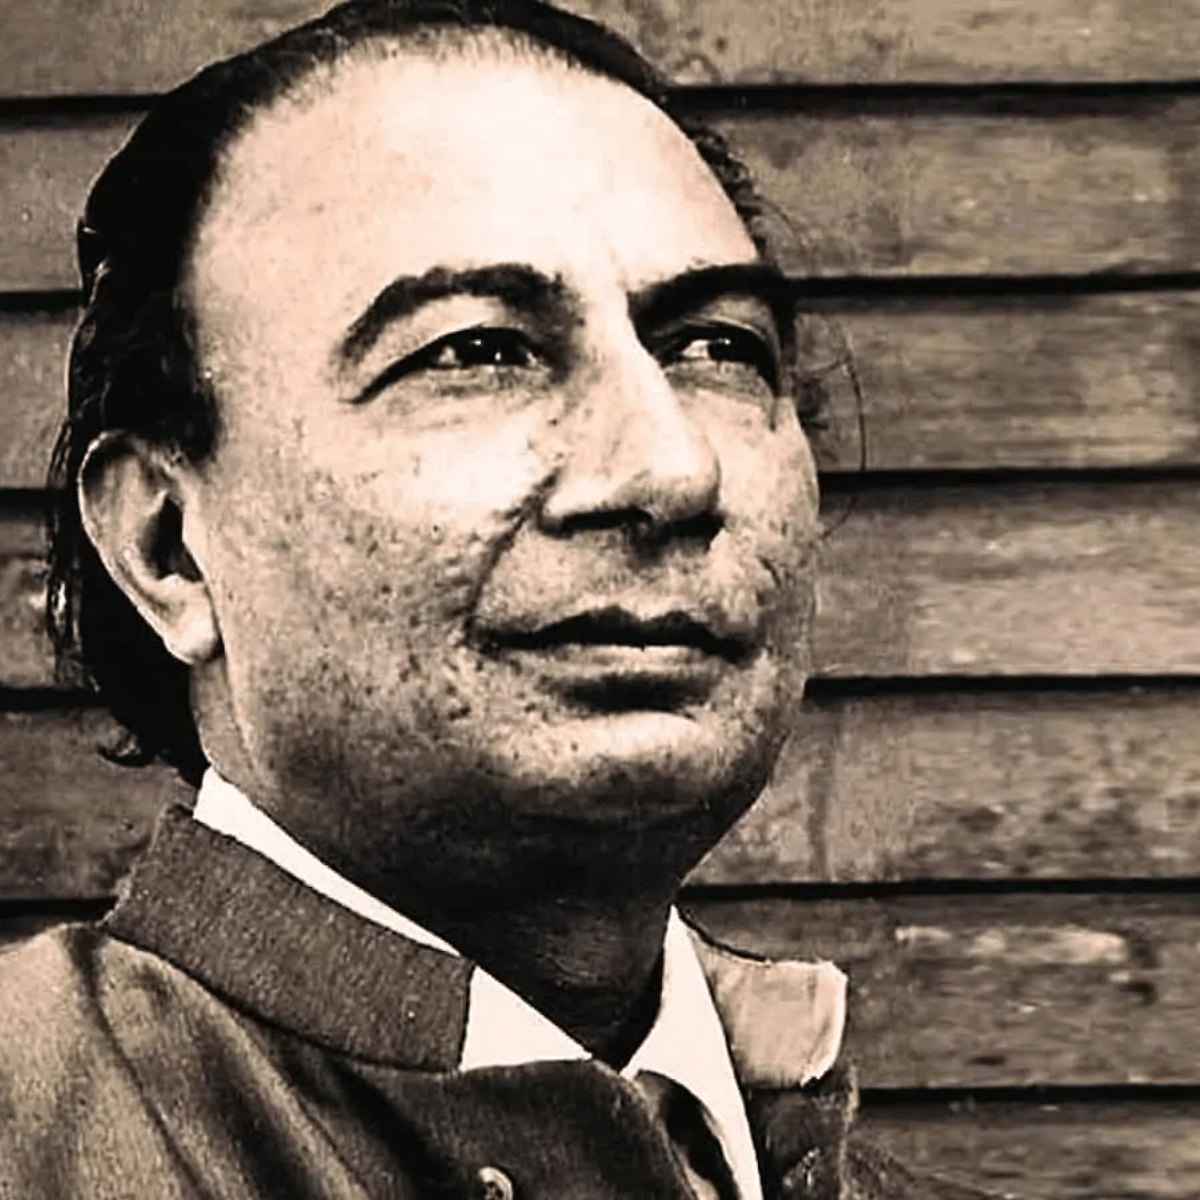 Sahir Ludhianvi: The personal in political and the political in personal